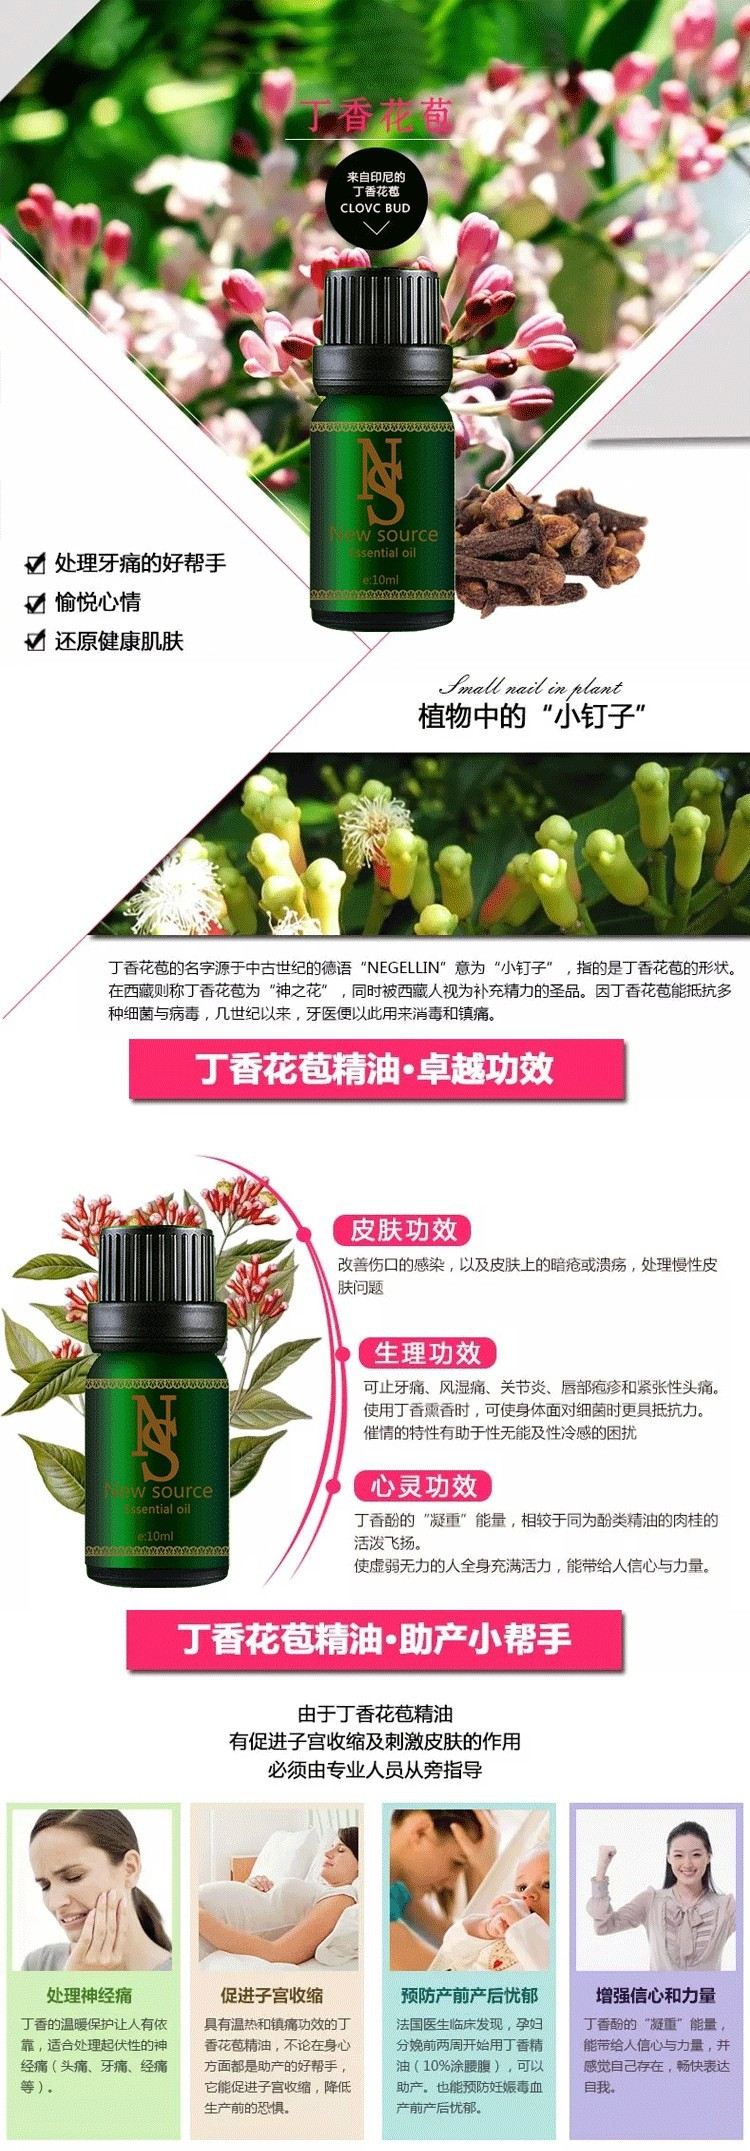 Plant essential oils Clove Oil 10ml Treatment of headache Toothache Halitosis Aromatherapy essential oils Z10 2